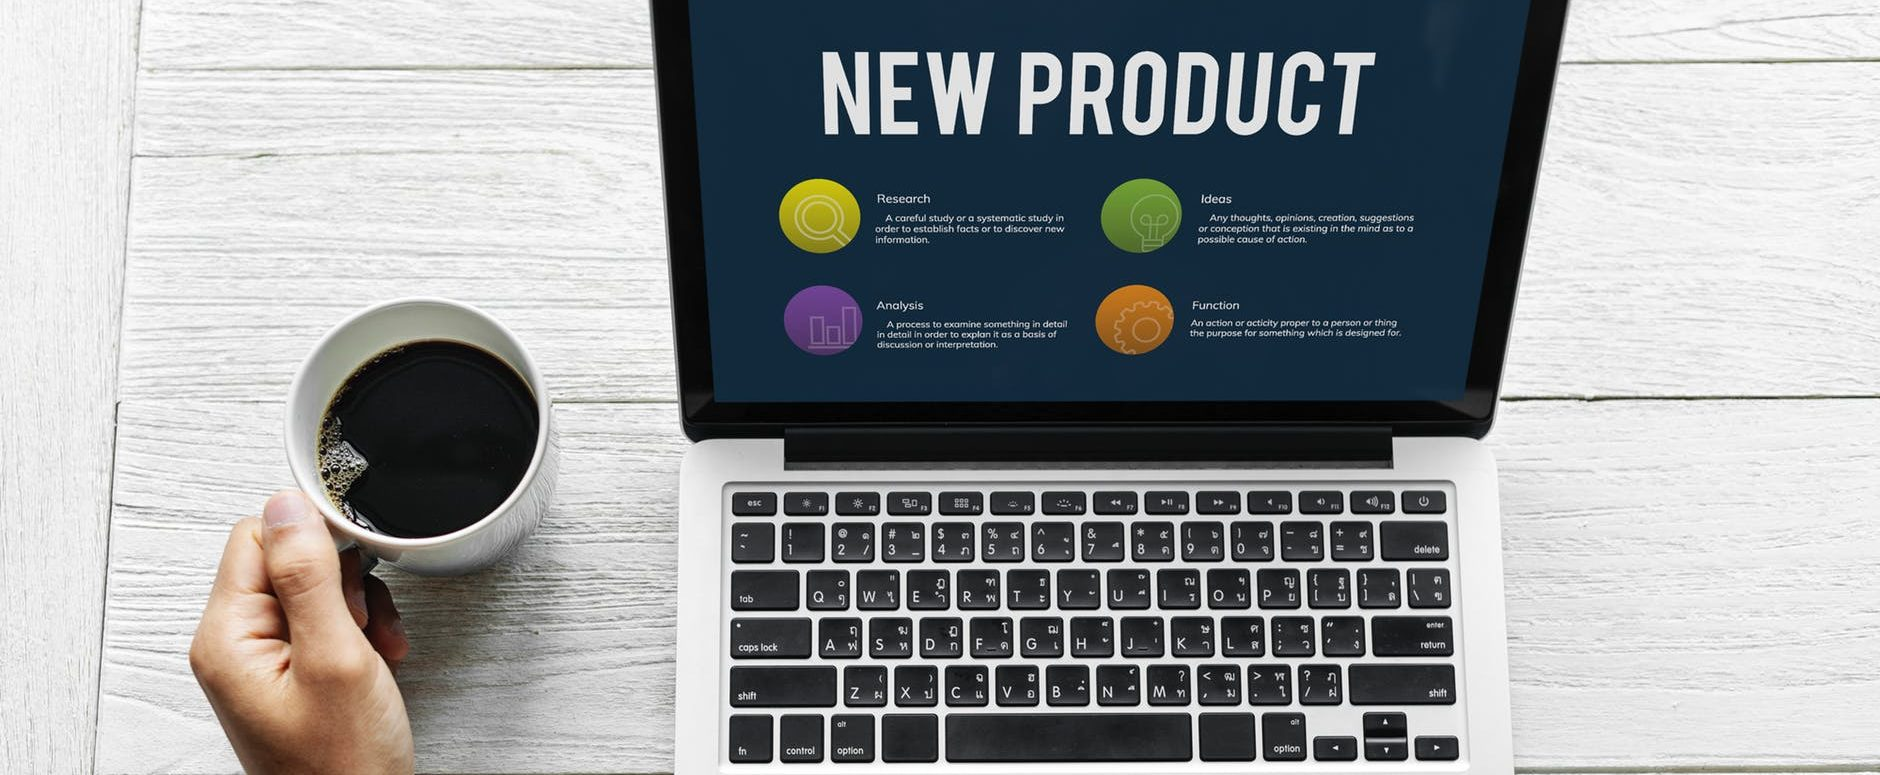 Free Product Submission Sites List 2019 » List Your New